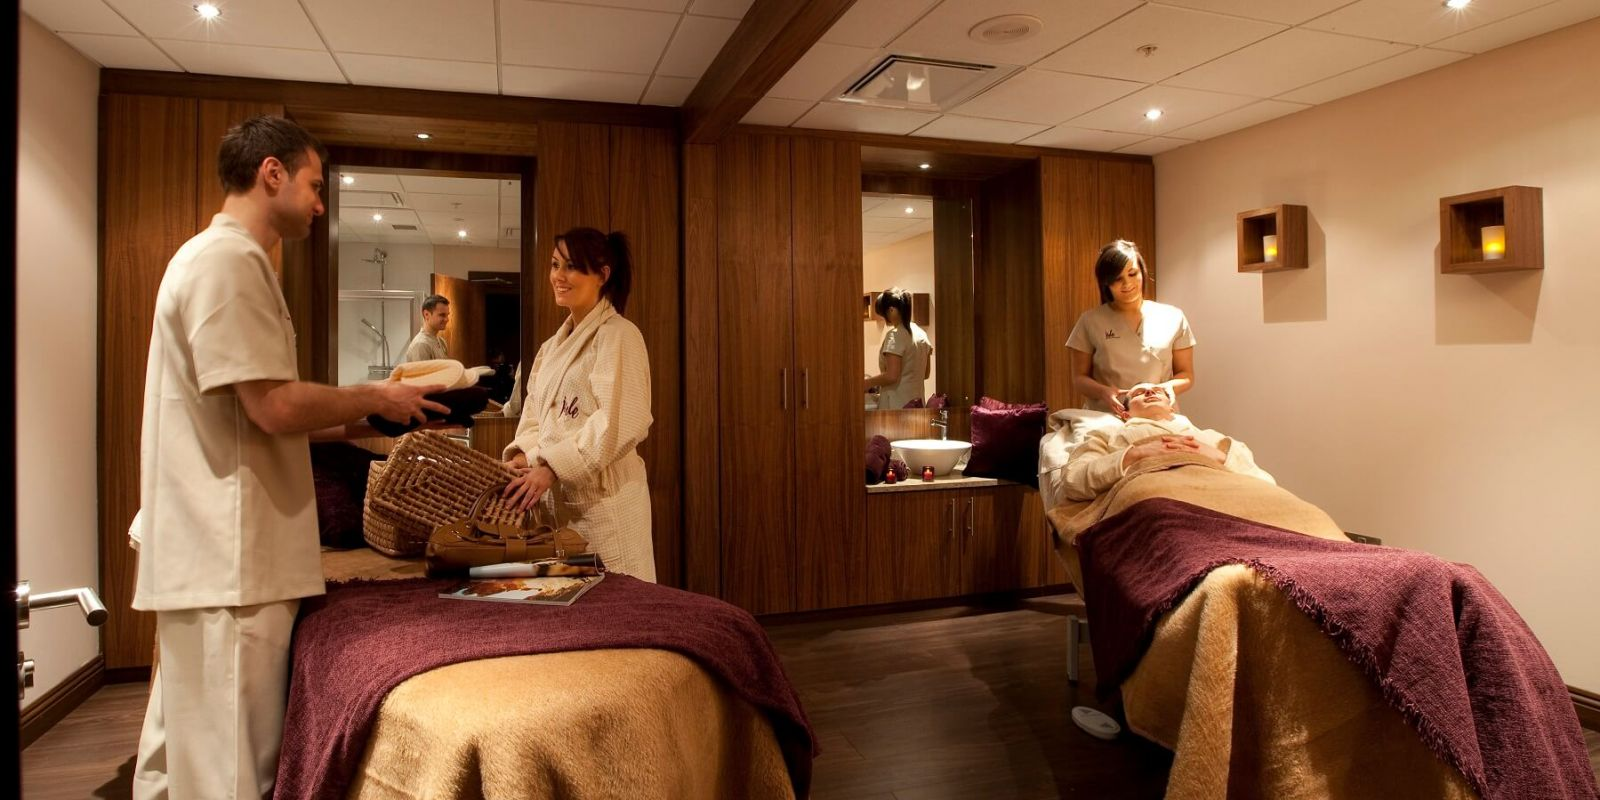 Jule Beauty & Spa Treatment Rooms